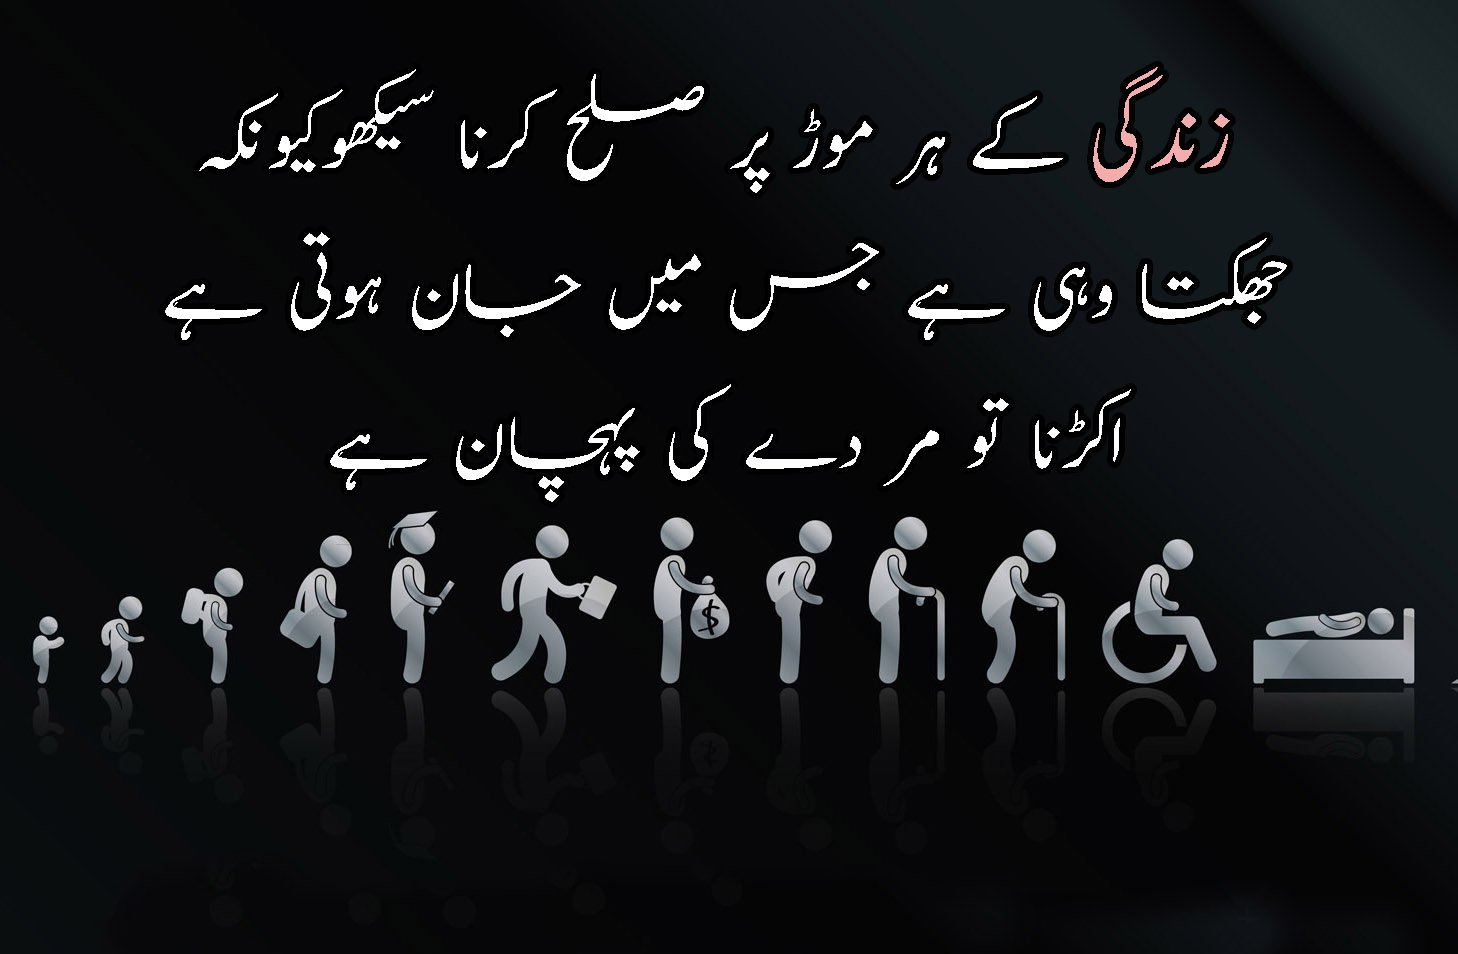 Sad Urdu Quotes About Life Beautiful Zindagi Quotes In Urdu Pic